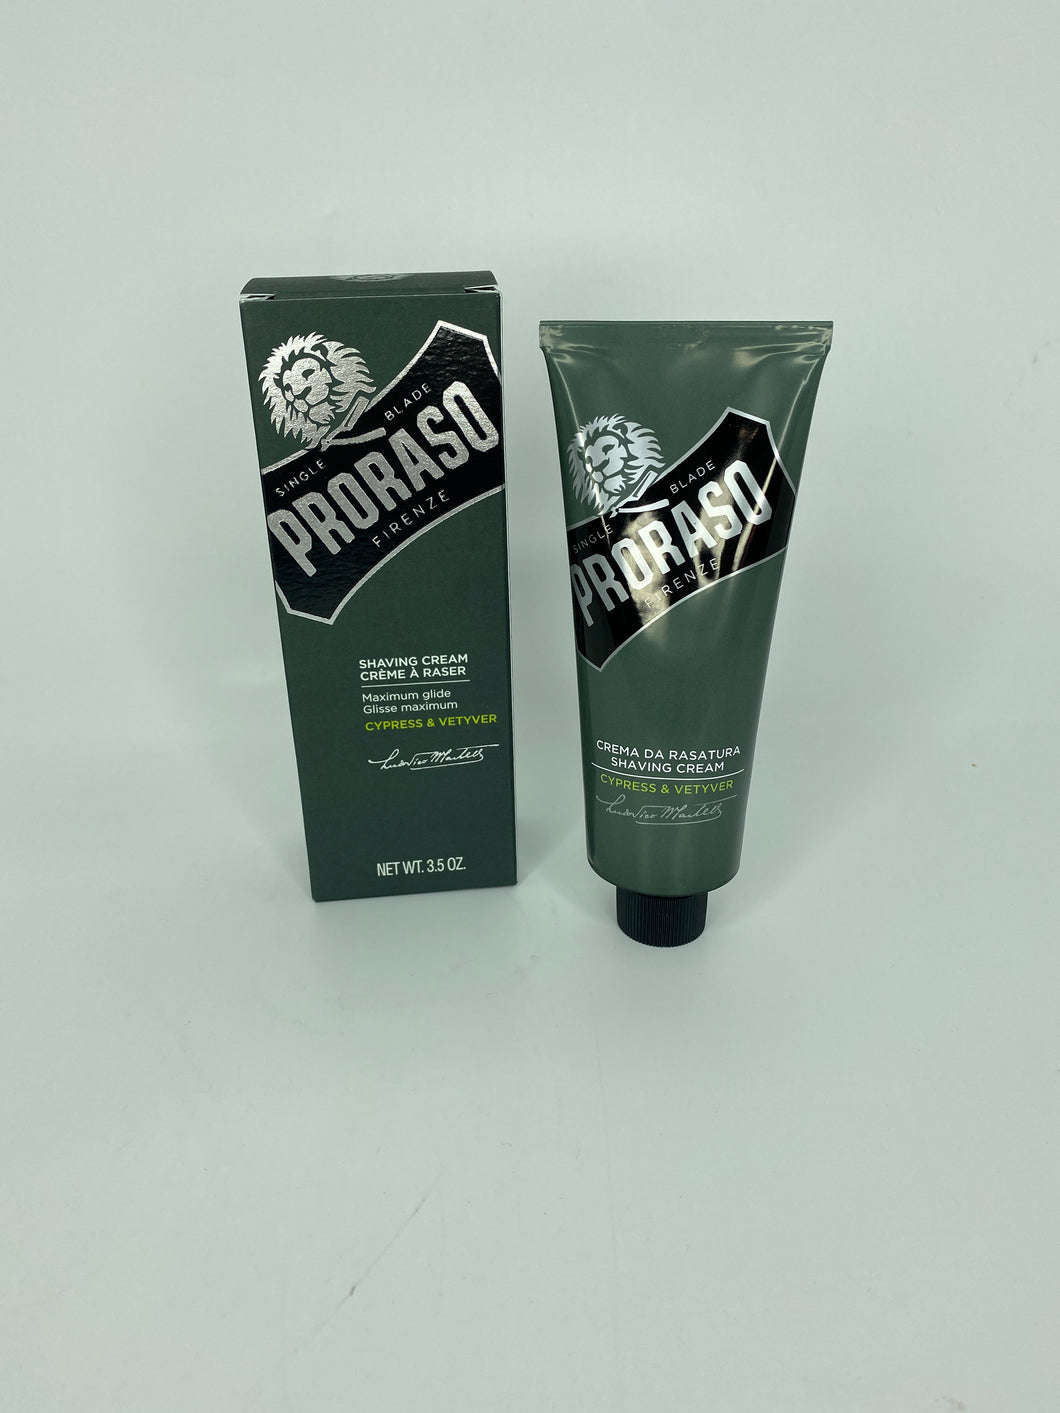 Proraso Cypress & Vetyver Shaving Cream